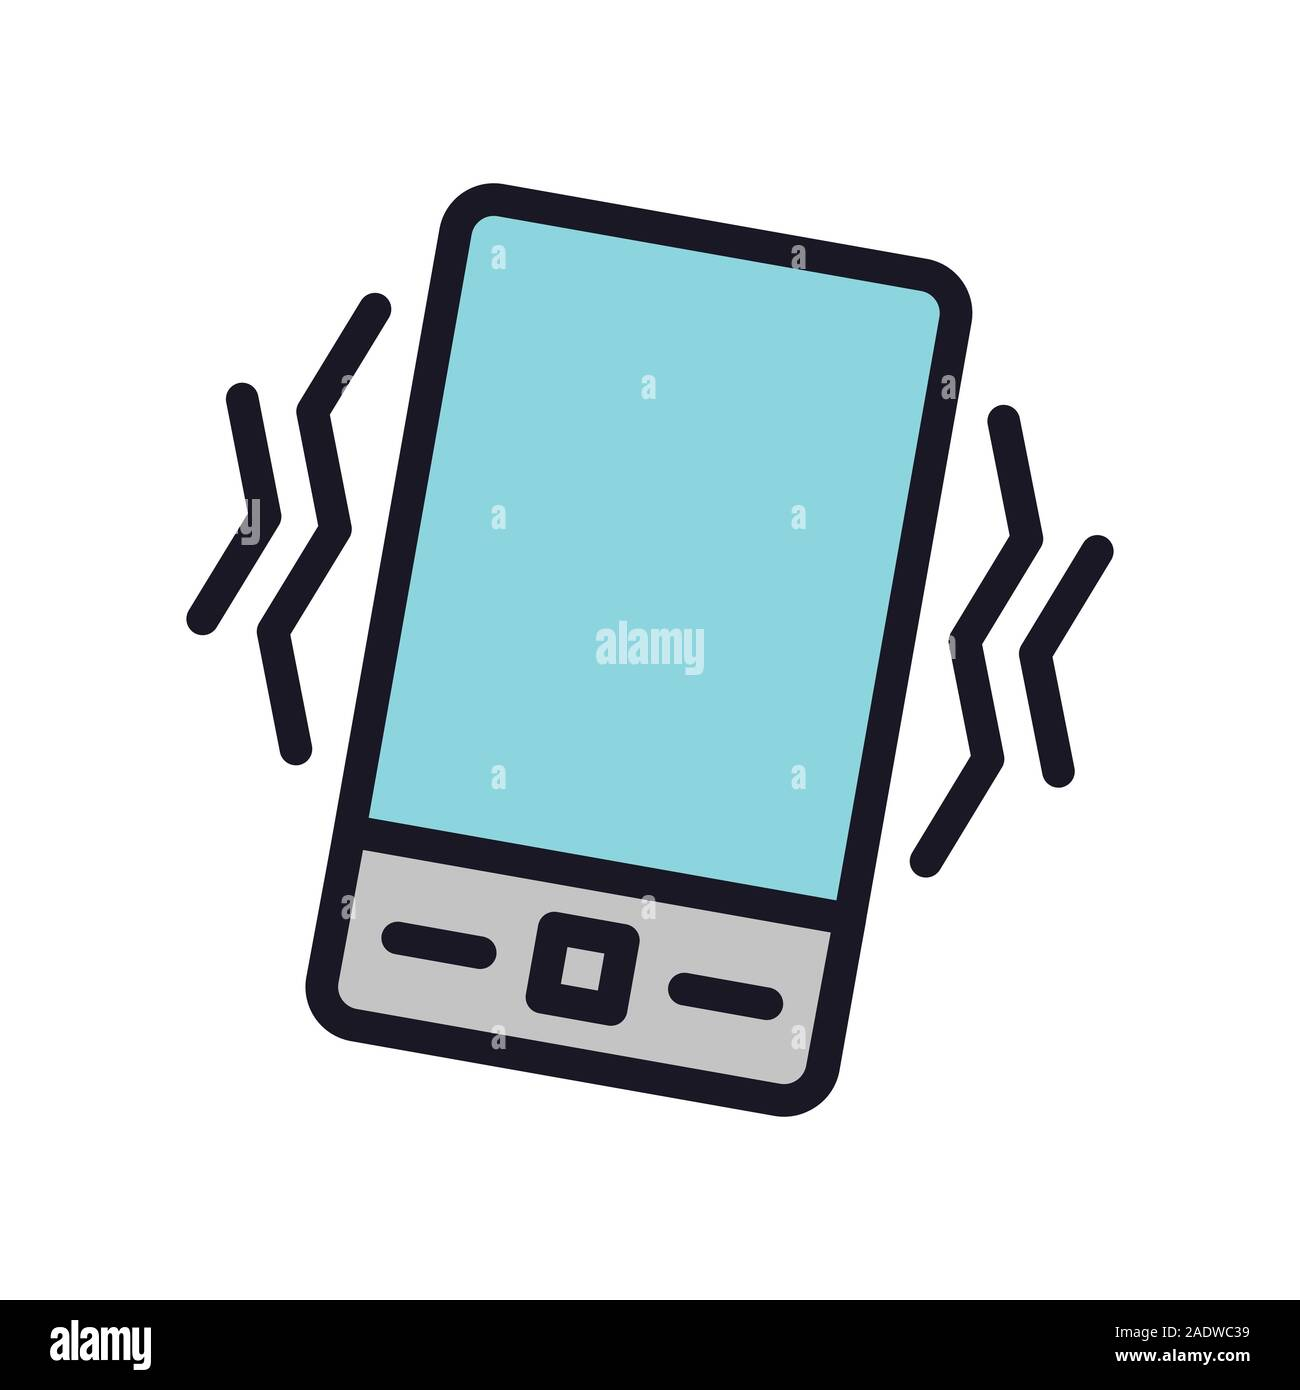 Phone Sound off or on Icon w lines showing sound Stock Vector